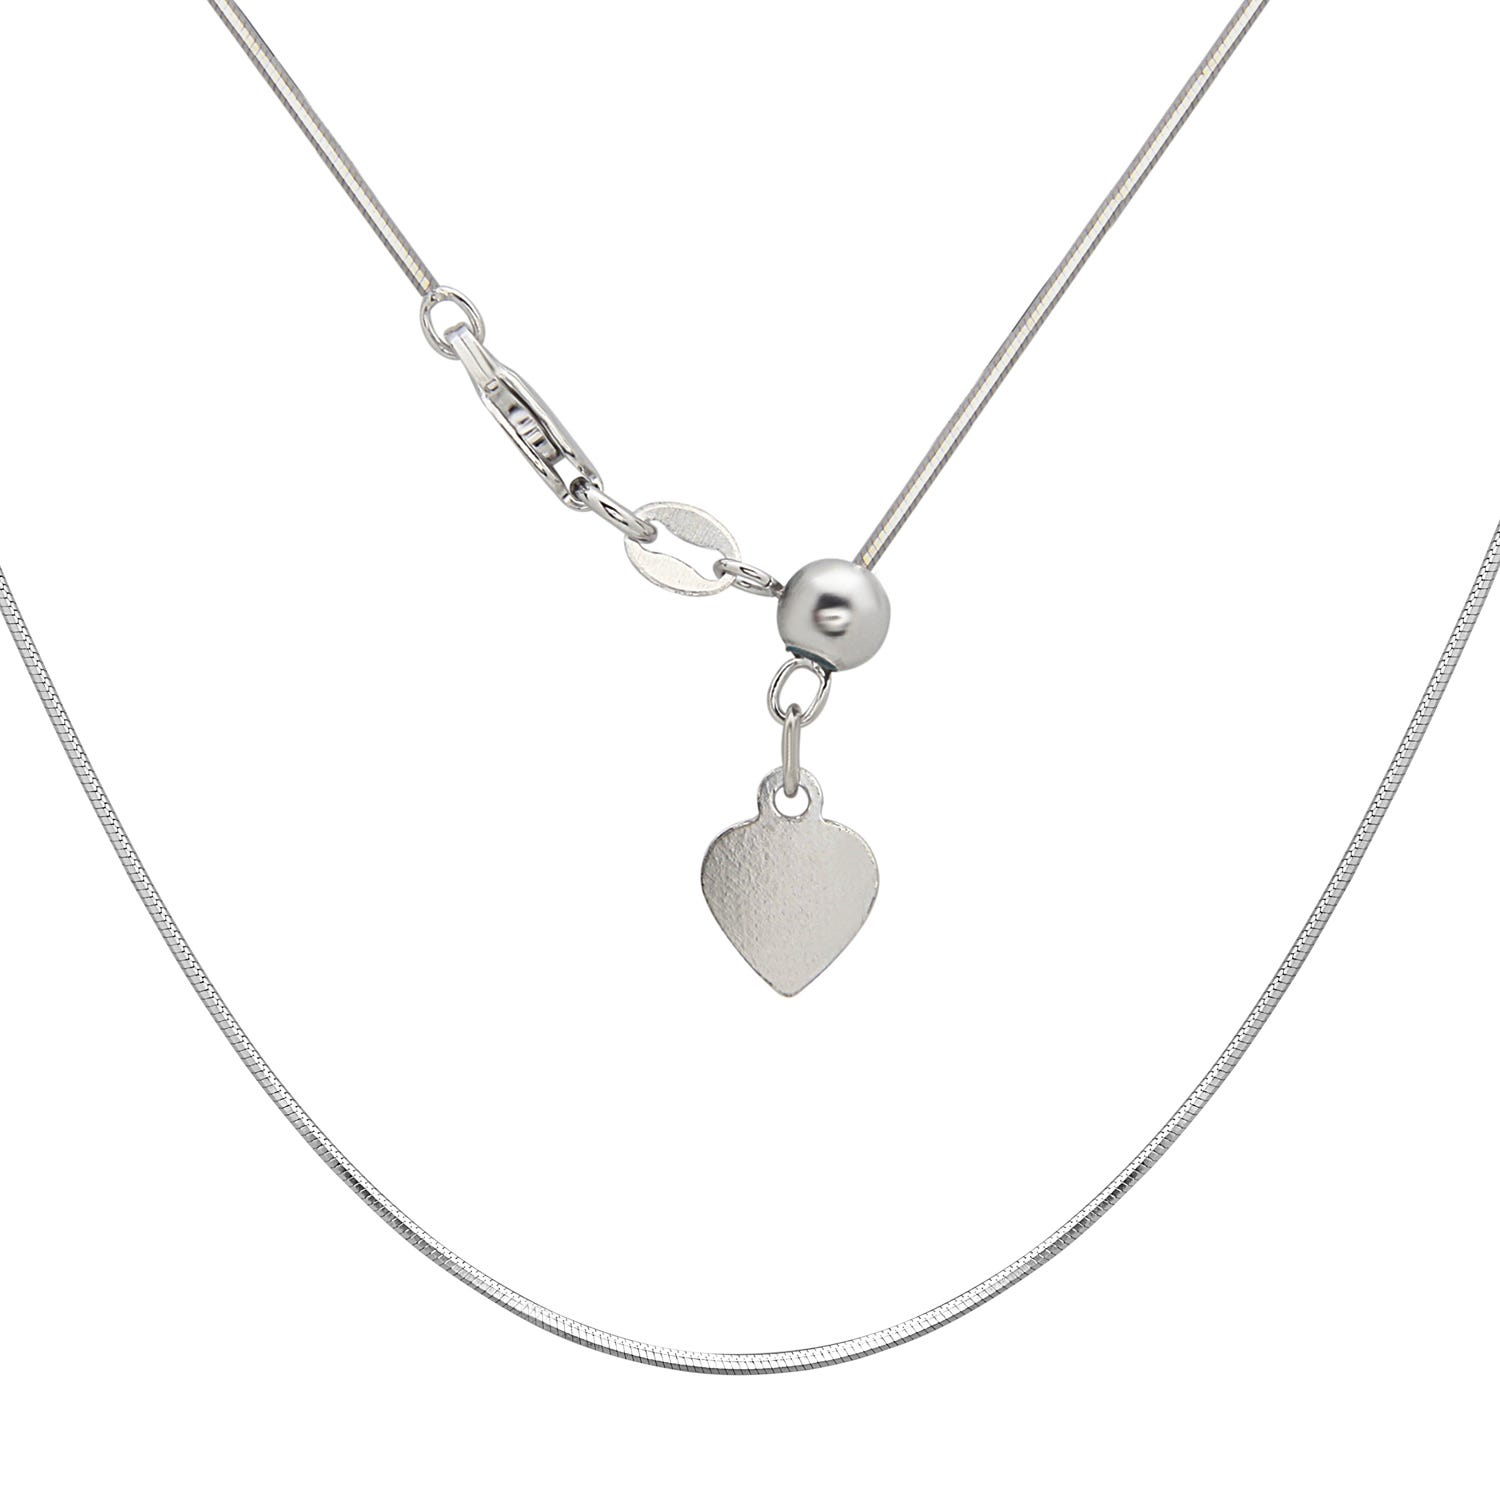 Adjustable Square Snake Chain 14-22